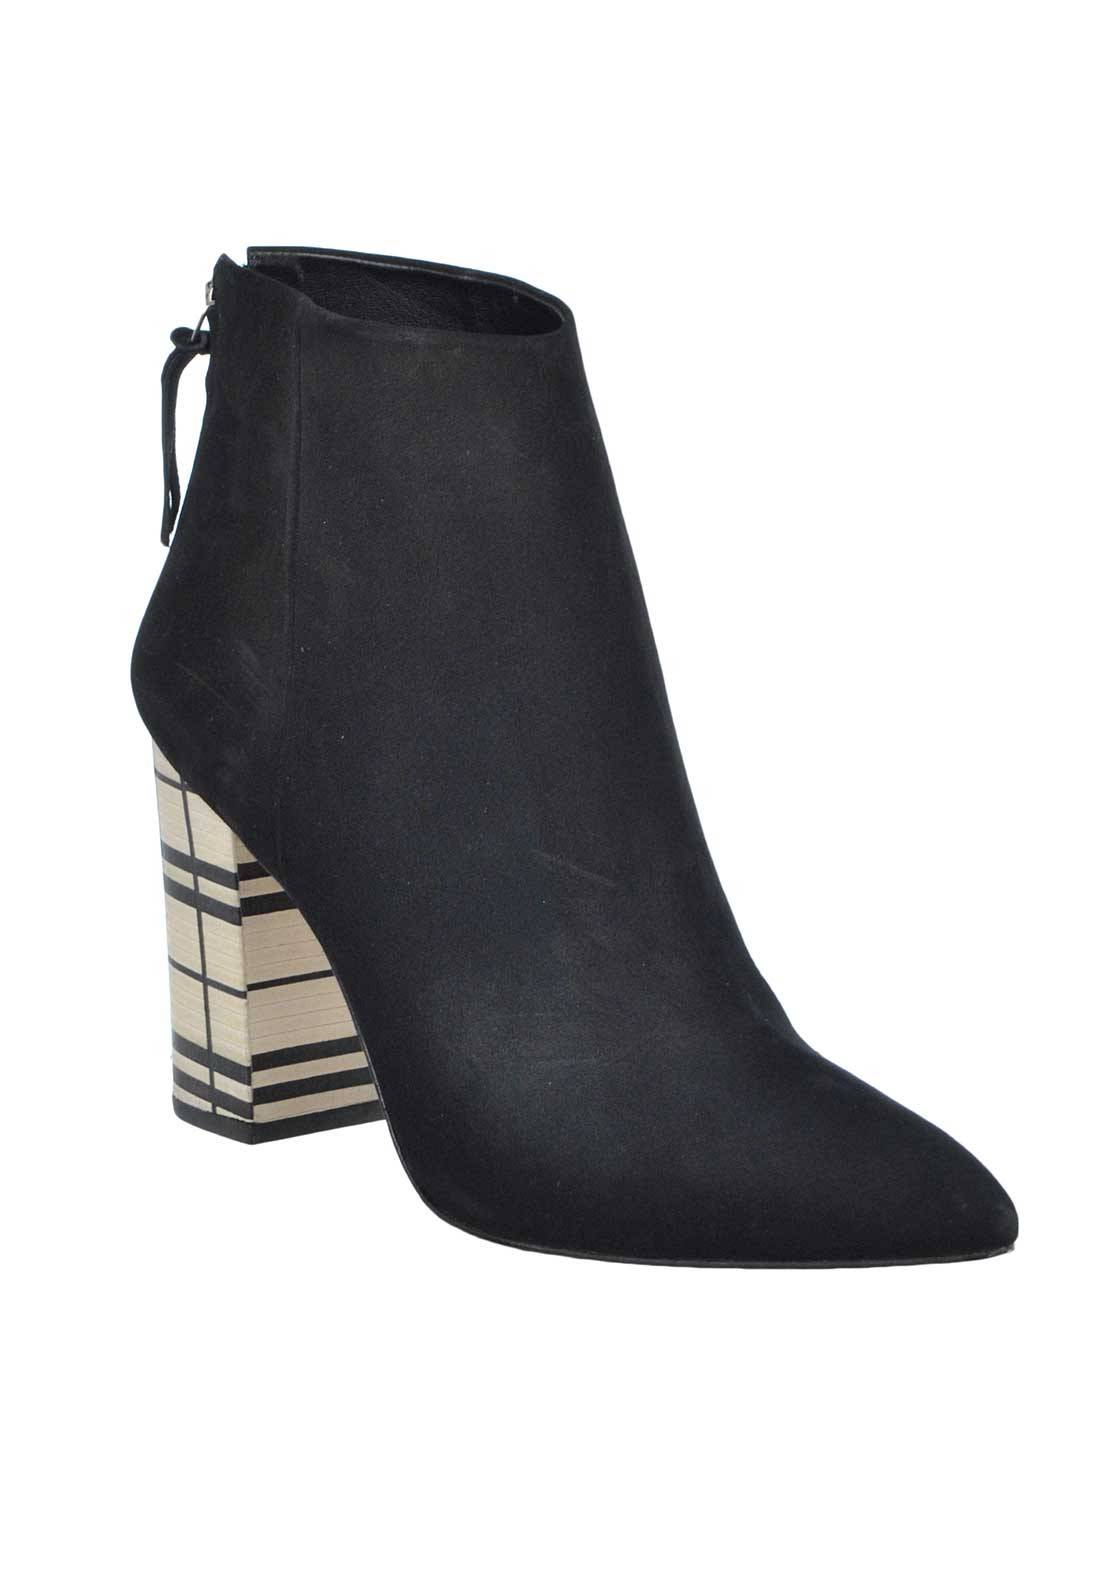 Unique Footwear Suede Leather Pointed Toe Chequered Block Heeled Boots, Black